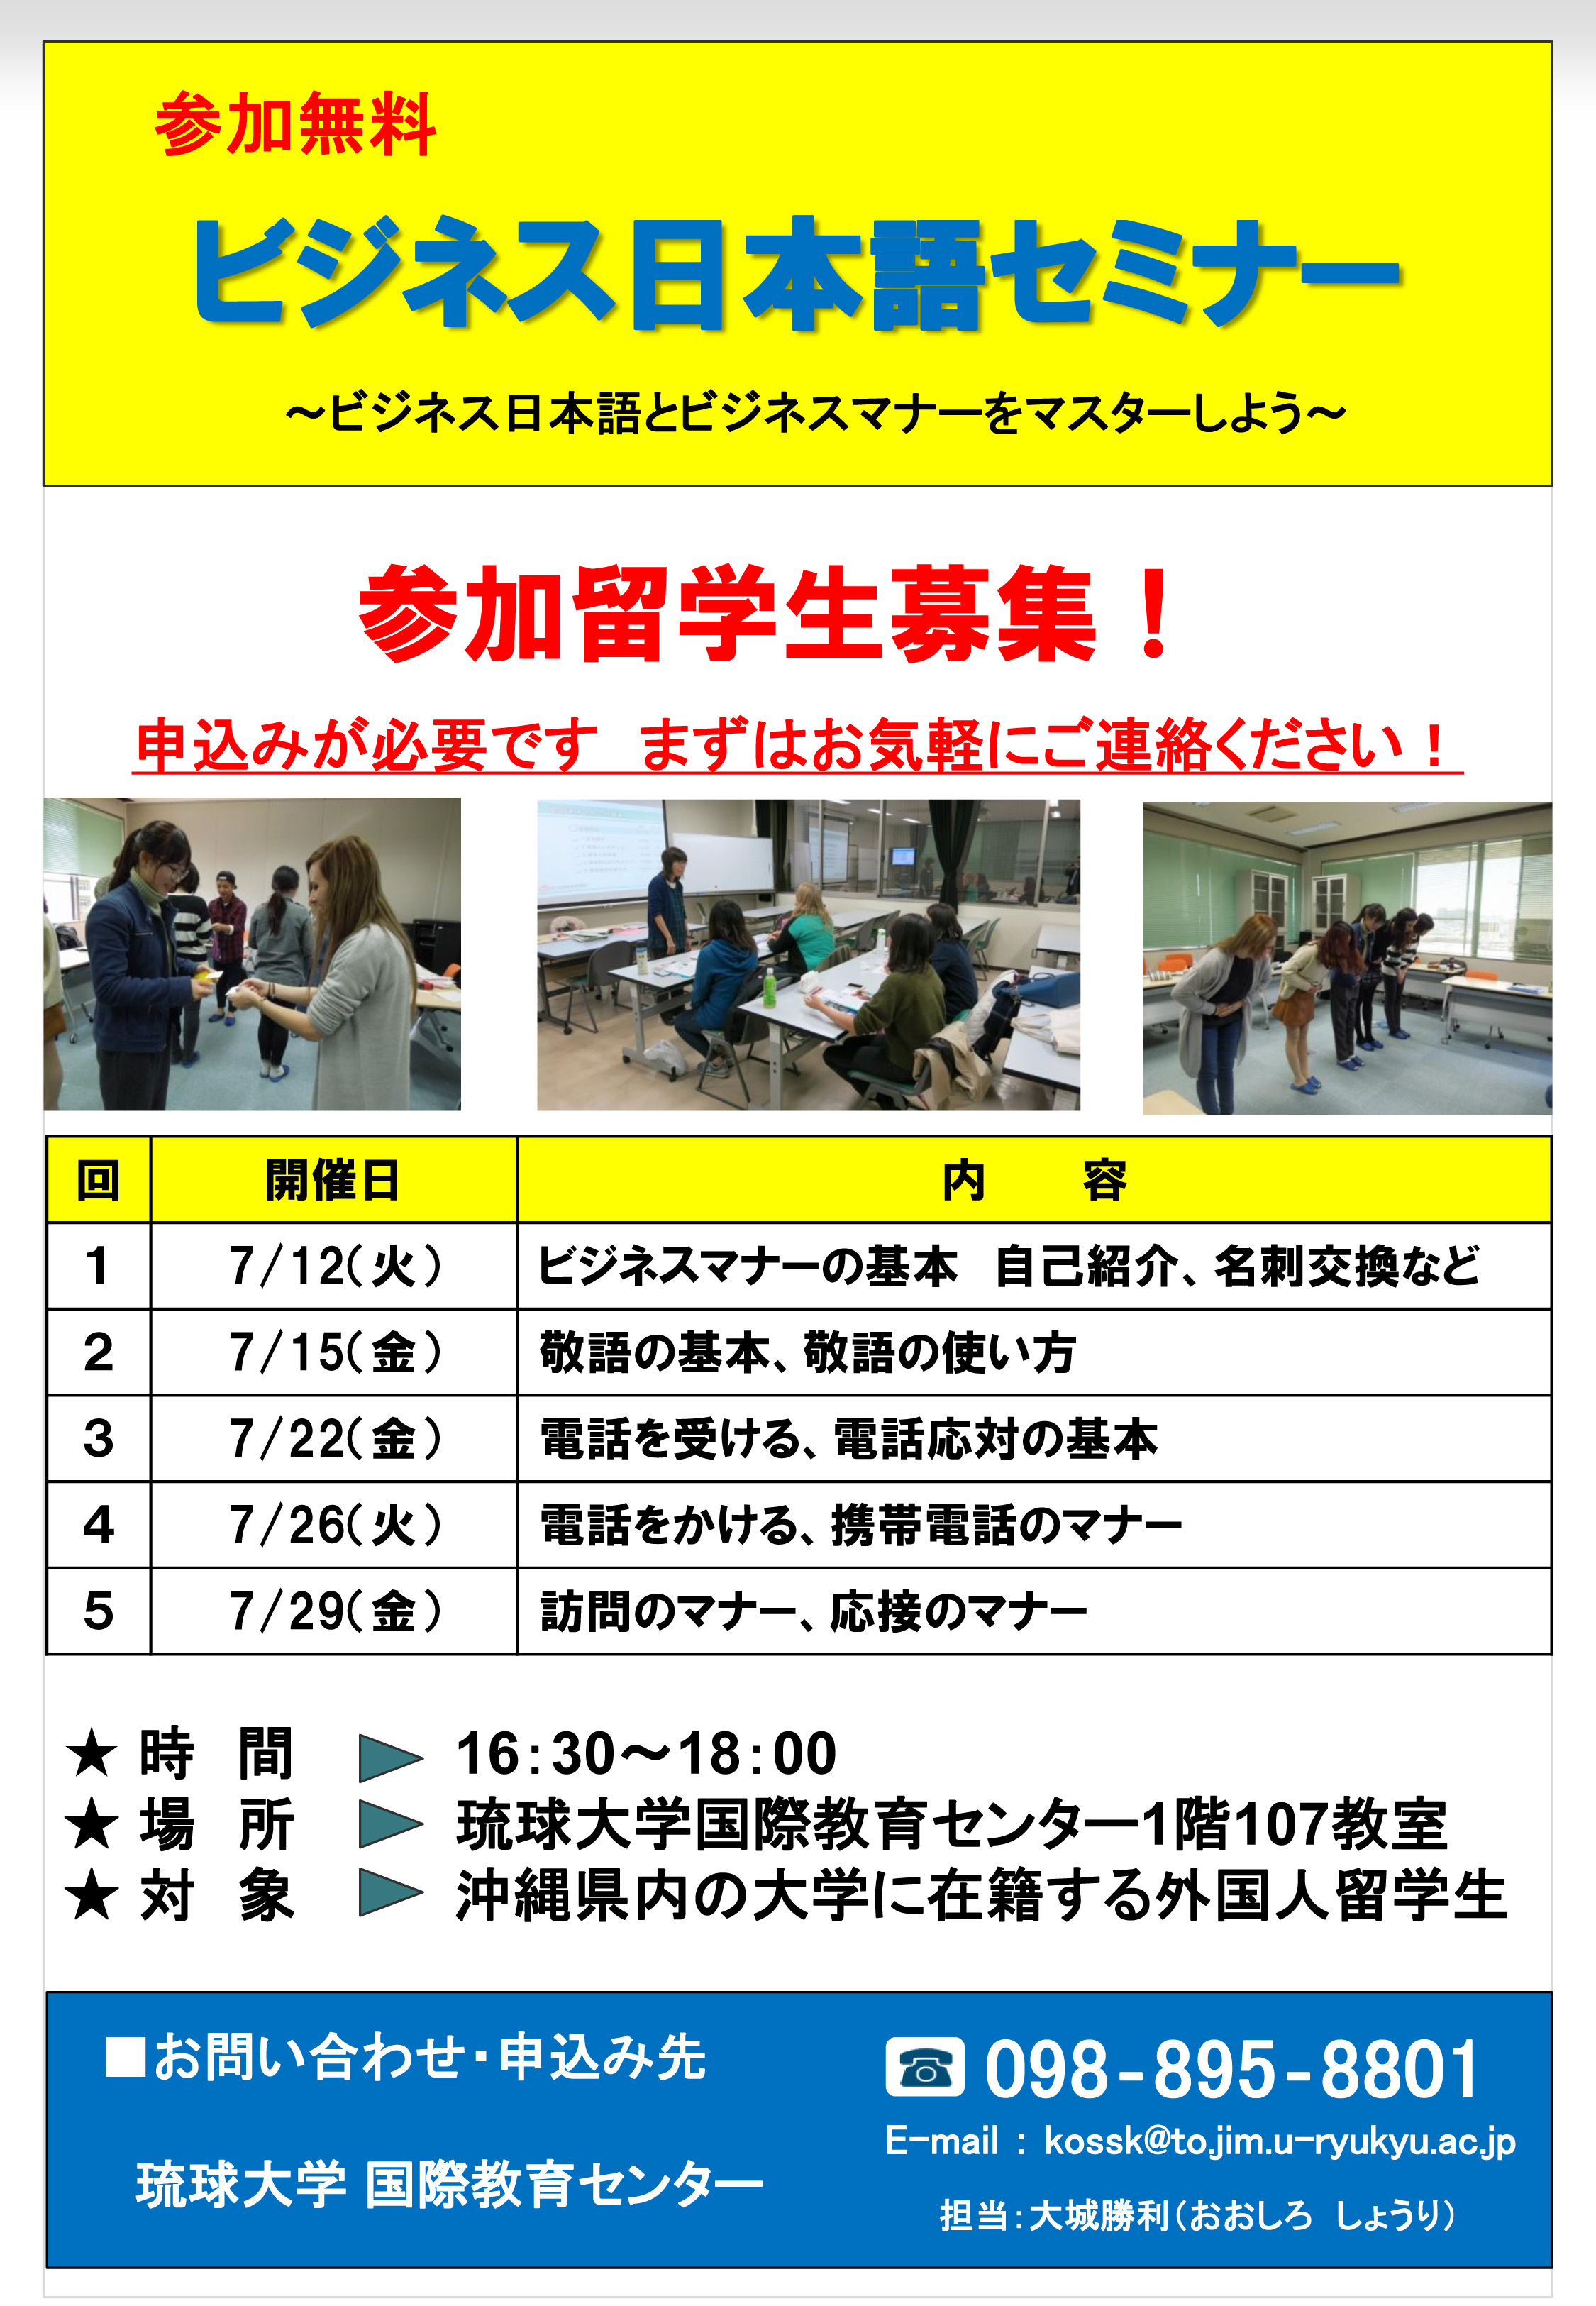 2016Summer-BusinessJapaneseSeminar@Ryudai